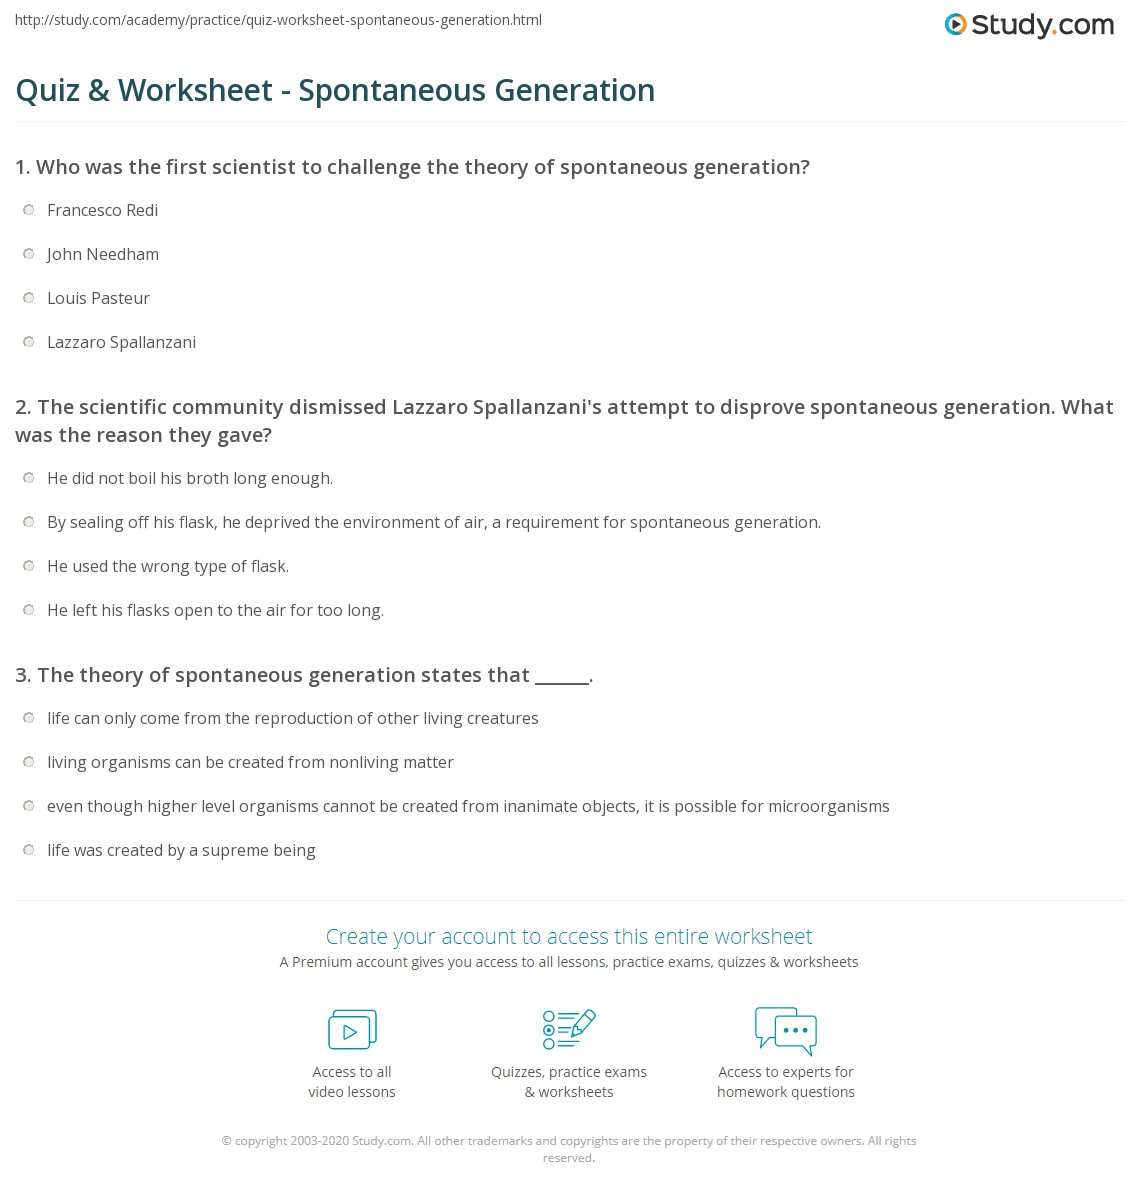 Aldiablosus  Winning Quiz Amp Worksheet  Spontaneous Generation  Studycom With Gorgeous Print Spontaneous Generation Definition Theory Amp Examples Worksheet With Lovely Color By Word Worksheet Also Free Printable Pre K Math Worksheets In Addition Life Cycle Of A Sunflower Worksheet And Teaching A Child To Read Worksheets As Well As Simple Subtraction Worksheet Additionally Kanji Worksheet From Studycom With Aldiablosus  Gorgeous Quiz Amp Worksheet  Spontaneous Generation  Studycom With Lovely Print Spontaneous Generation Definition Theory Amp Examples Worksheet And Winning Color By Word Worksheet Also Free Printable Pre K Math Worksheets In Addition Life Cycle Of A Sunflower Worksheet From Studycom